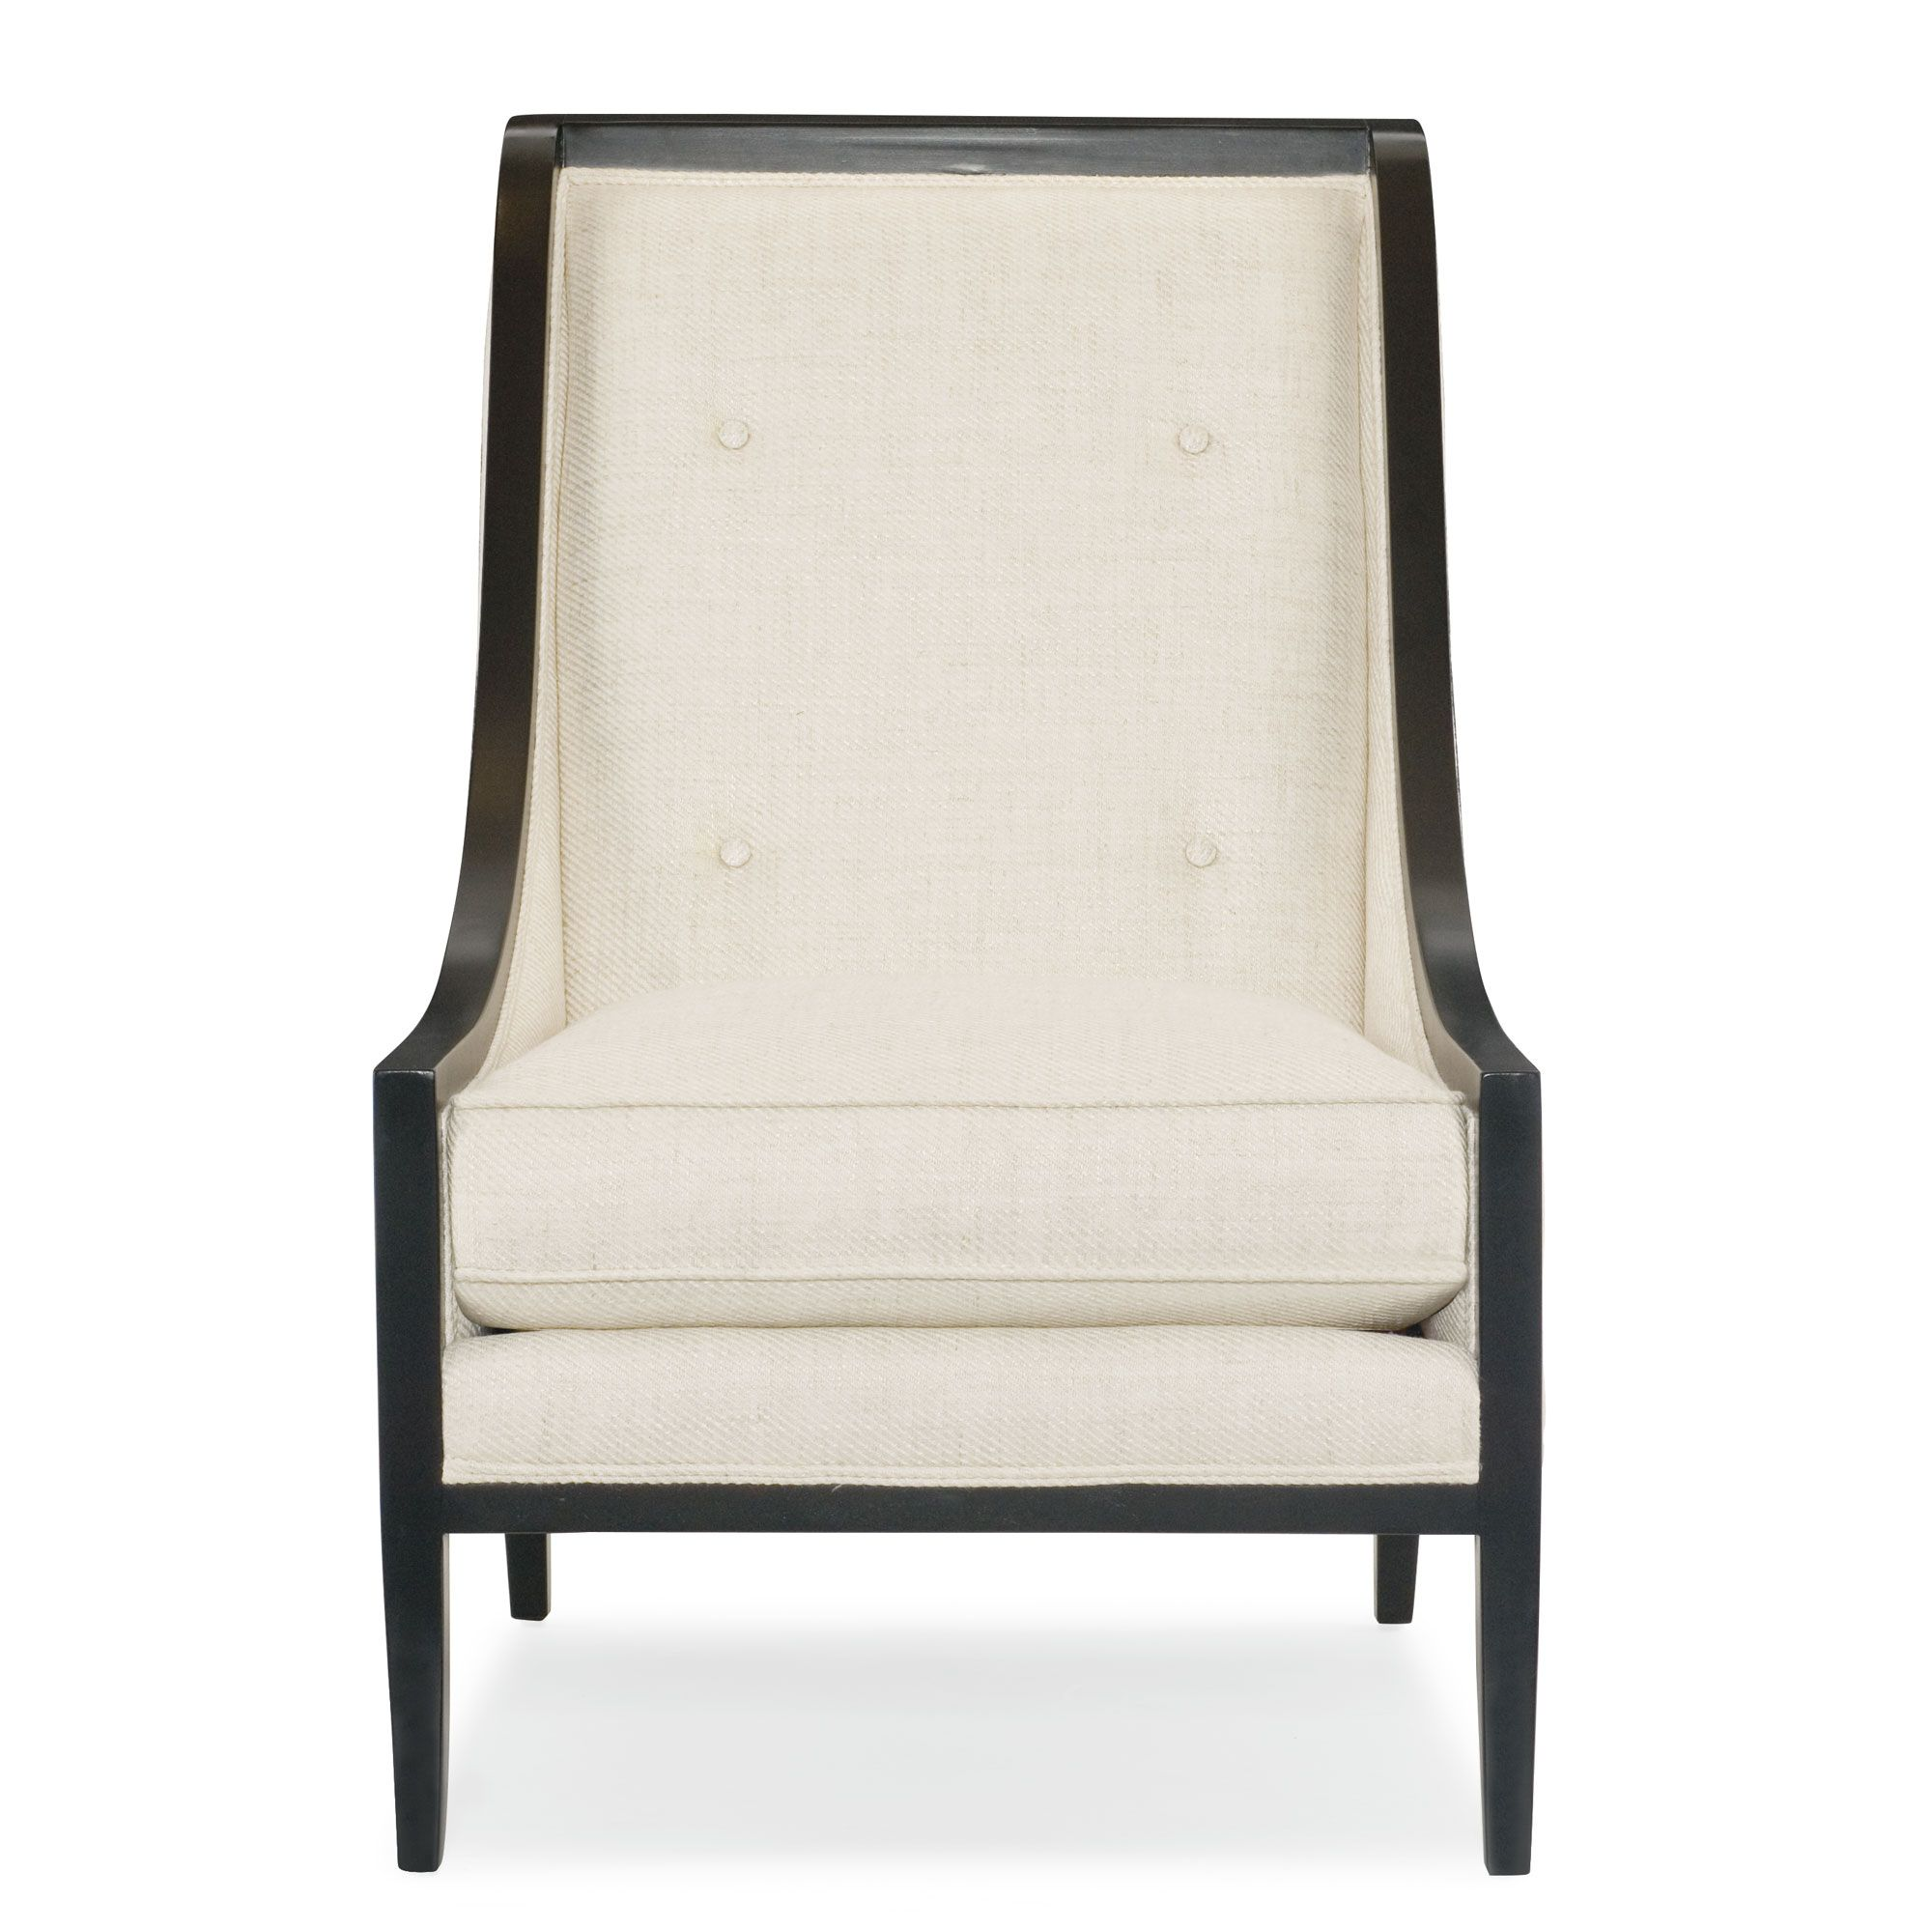 Wing chair bernhardt - Bernhardt Henderson Chair Many Wood Options And Hundreds Of Fabric Options Available